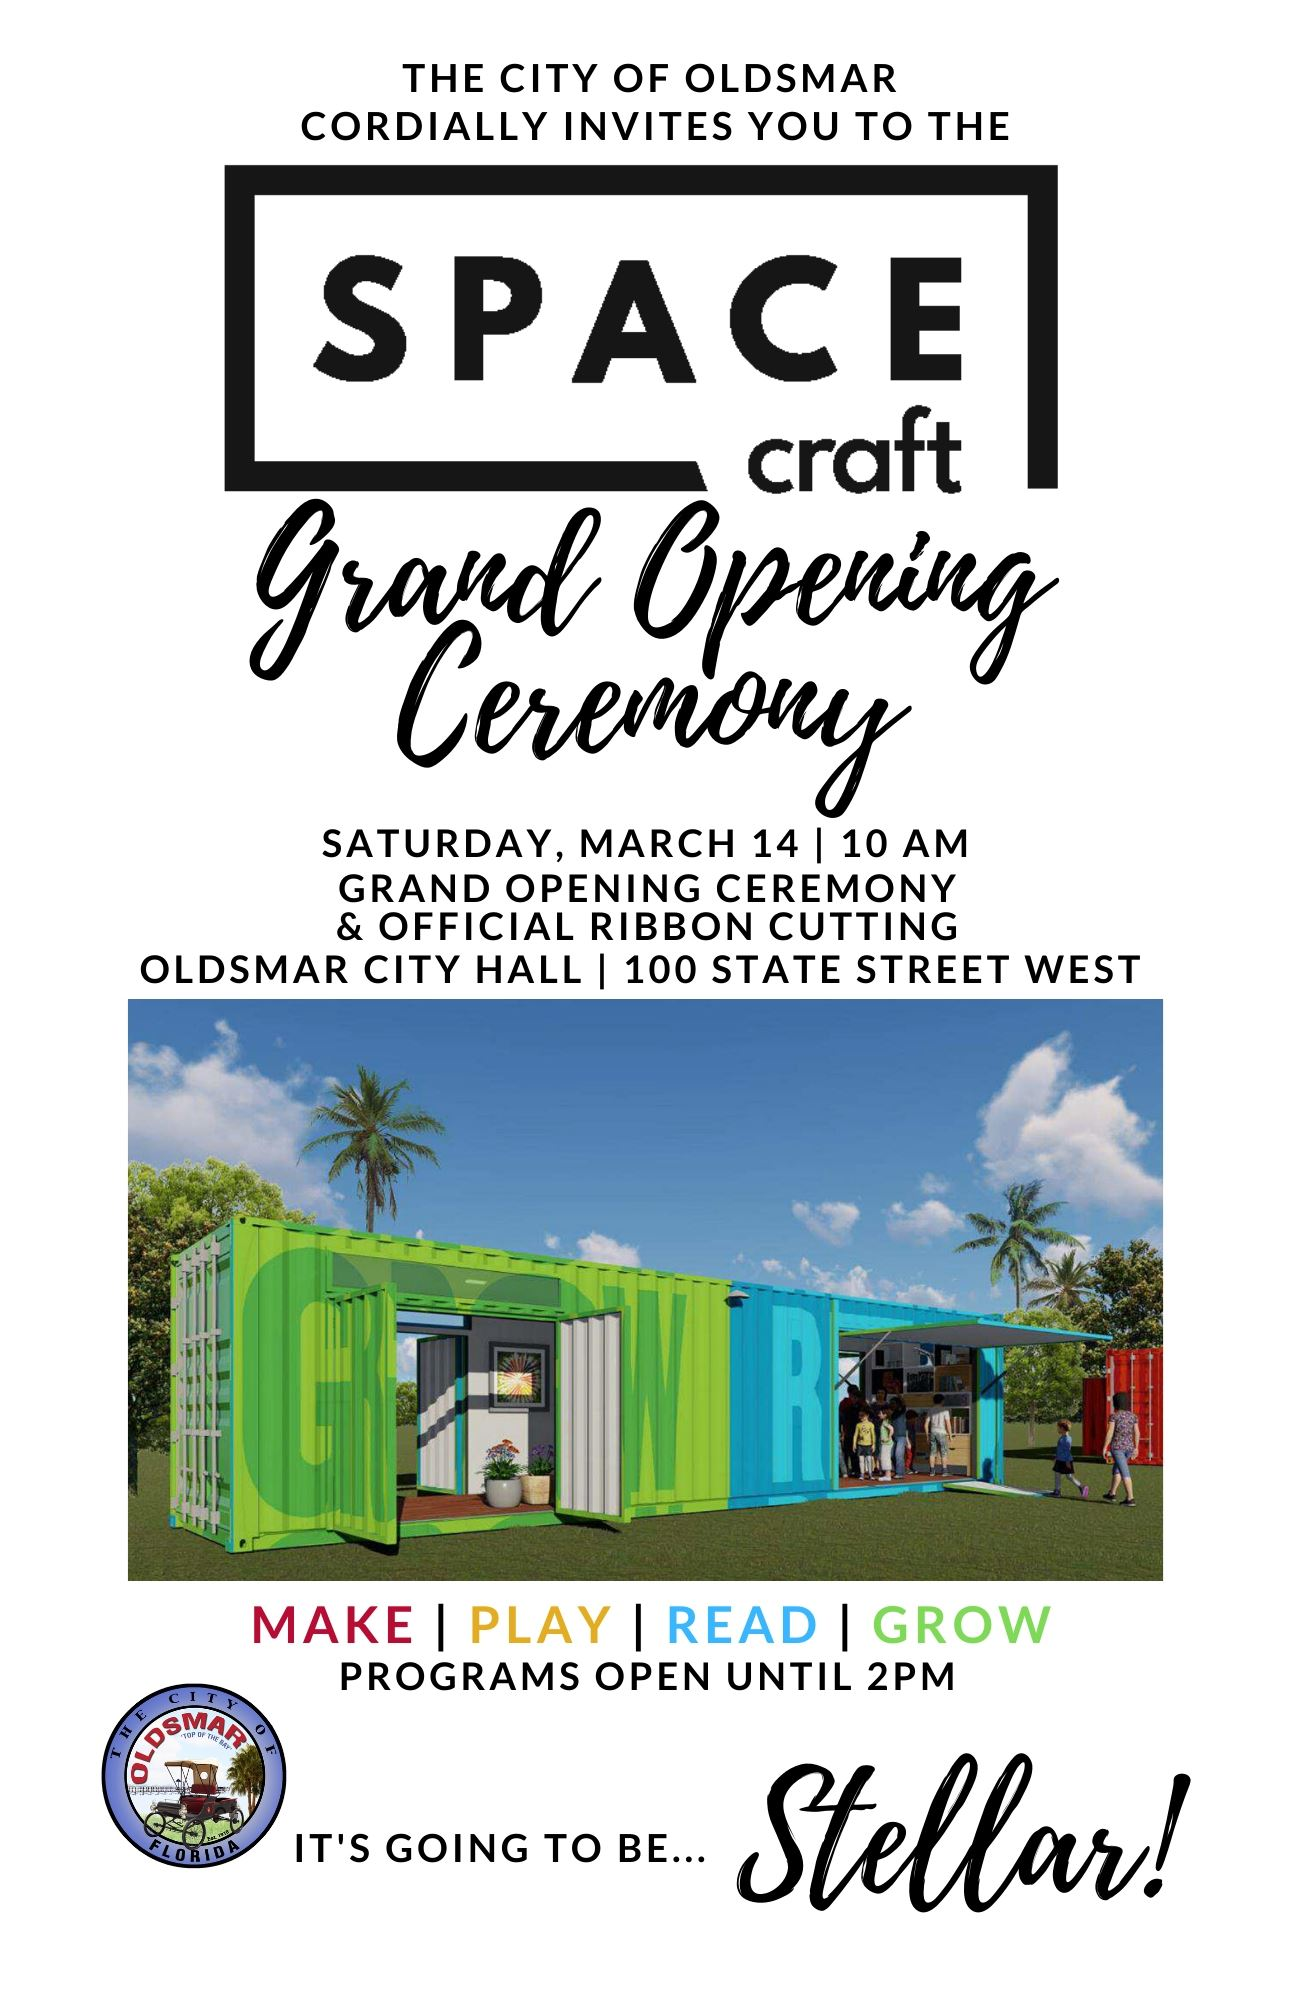 Oldsmar SPACEcraft Invite Grand Opening